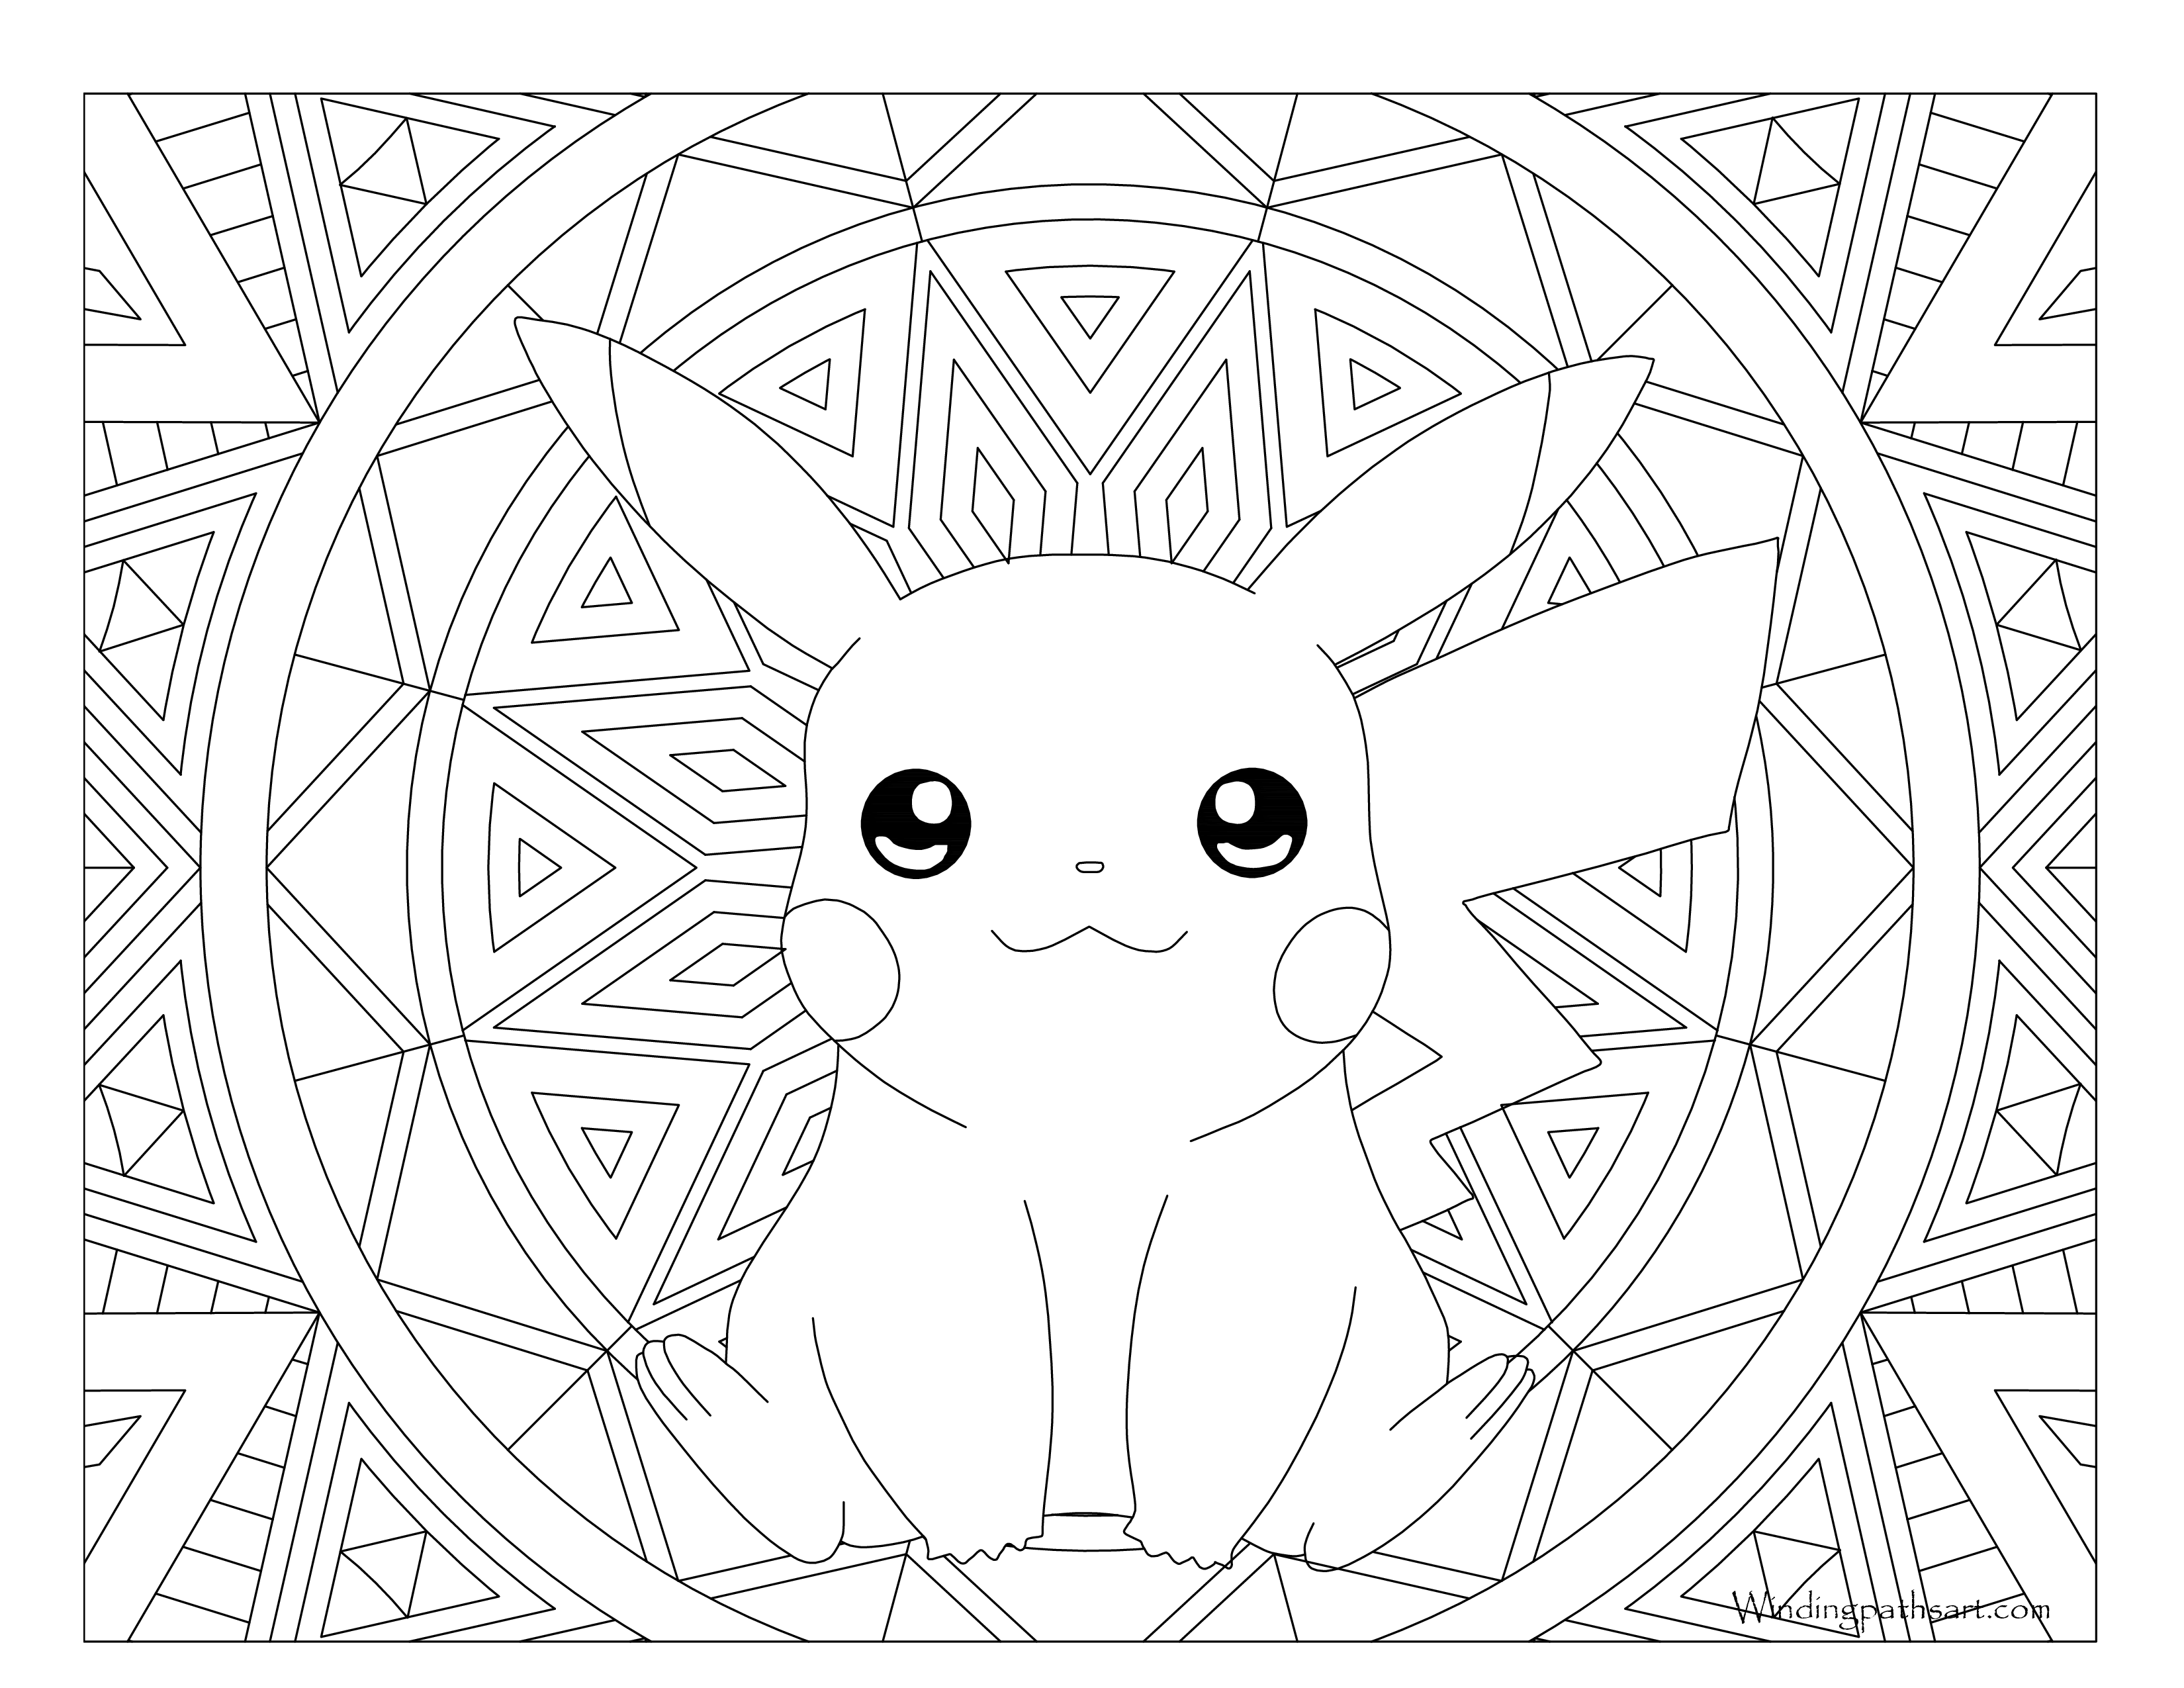 025 Pikachu Pokemon Coloring Page Windingpathsart